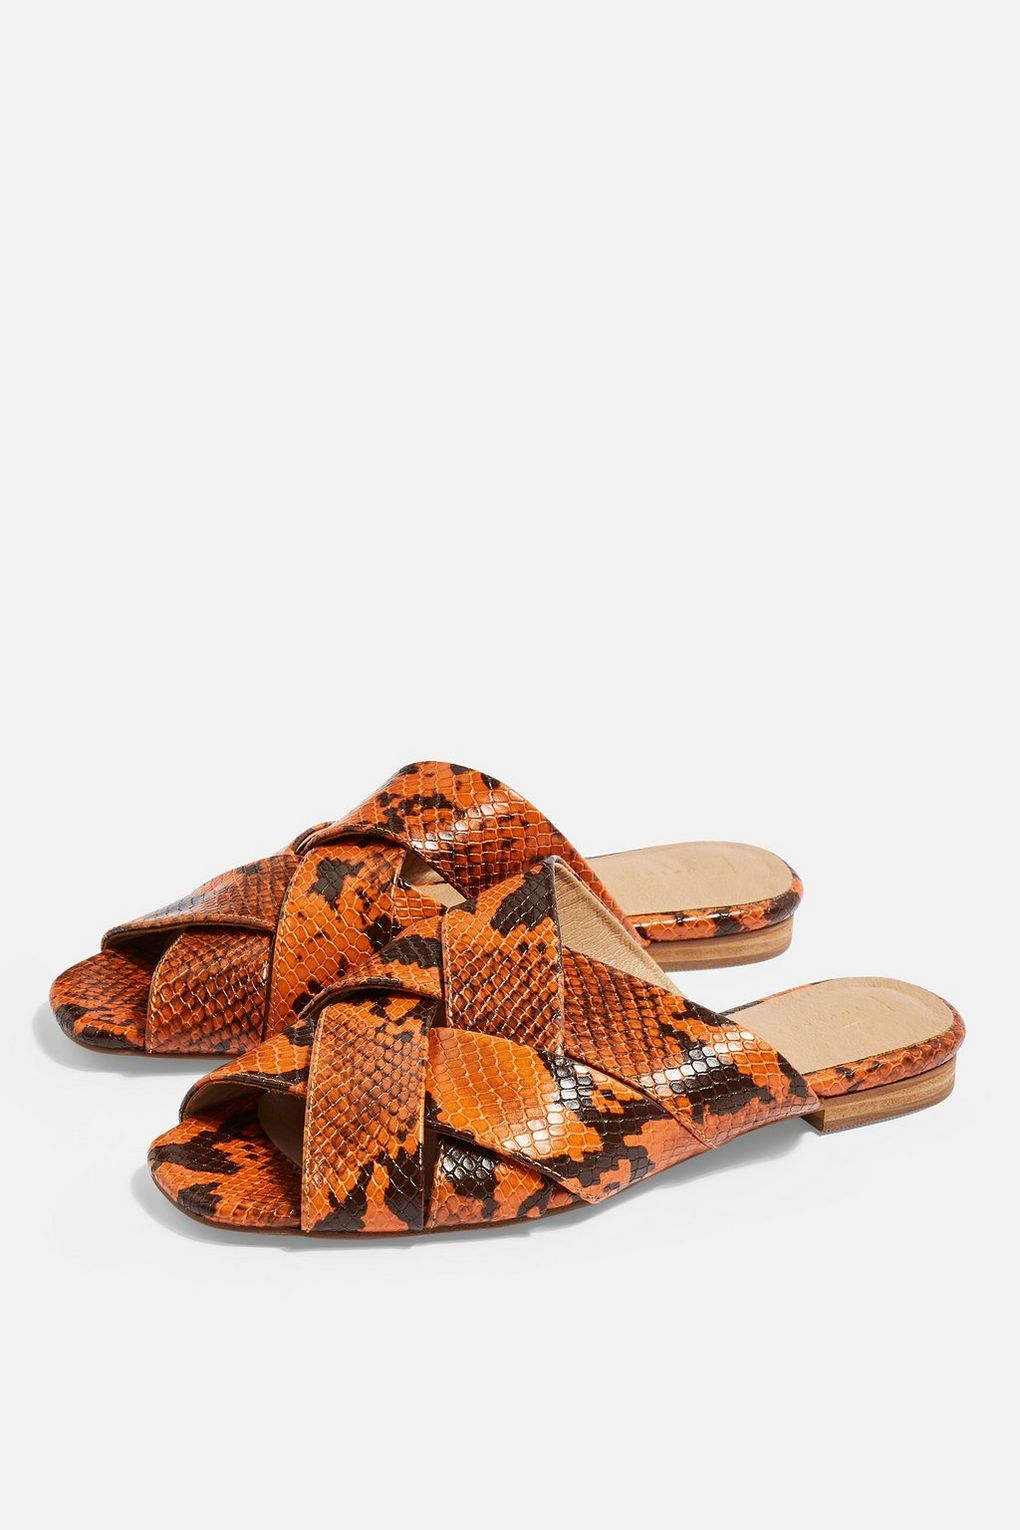 HOP Flat Sandals. Available in three colors. Topshop. $40.